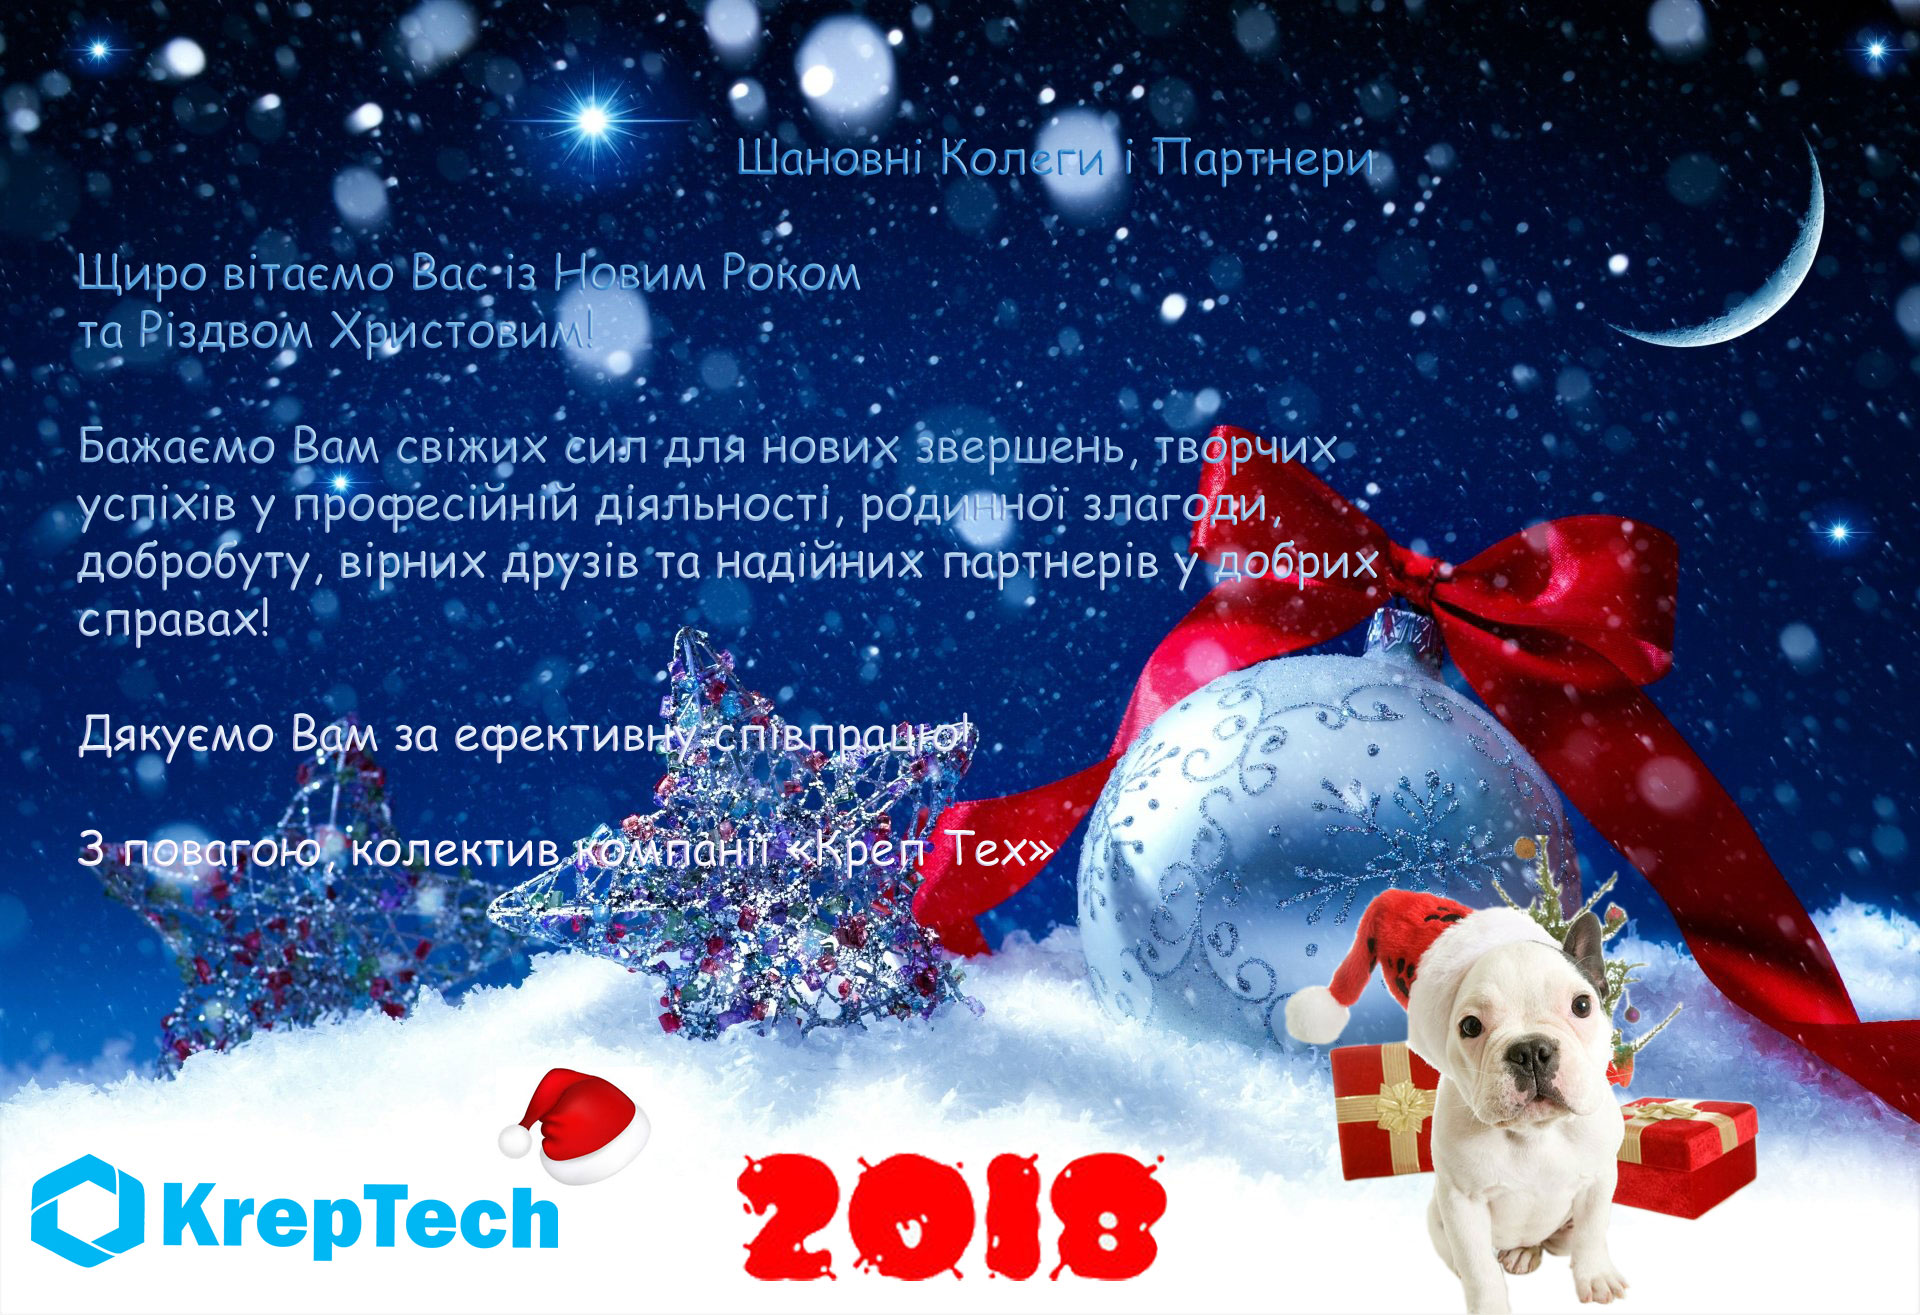 happy new year kreptech